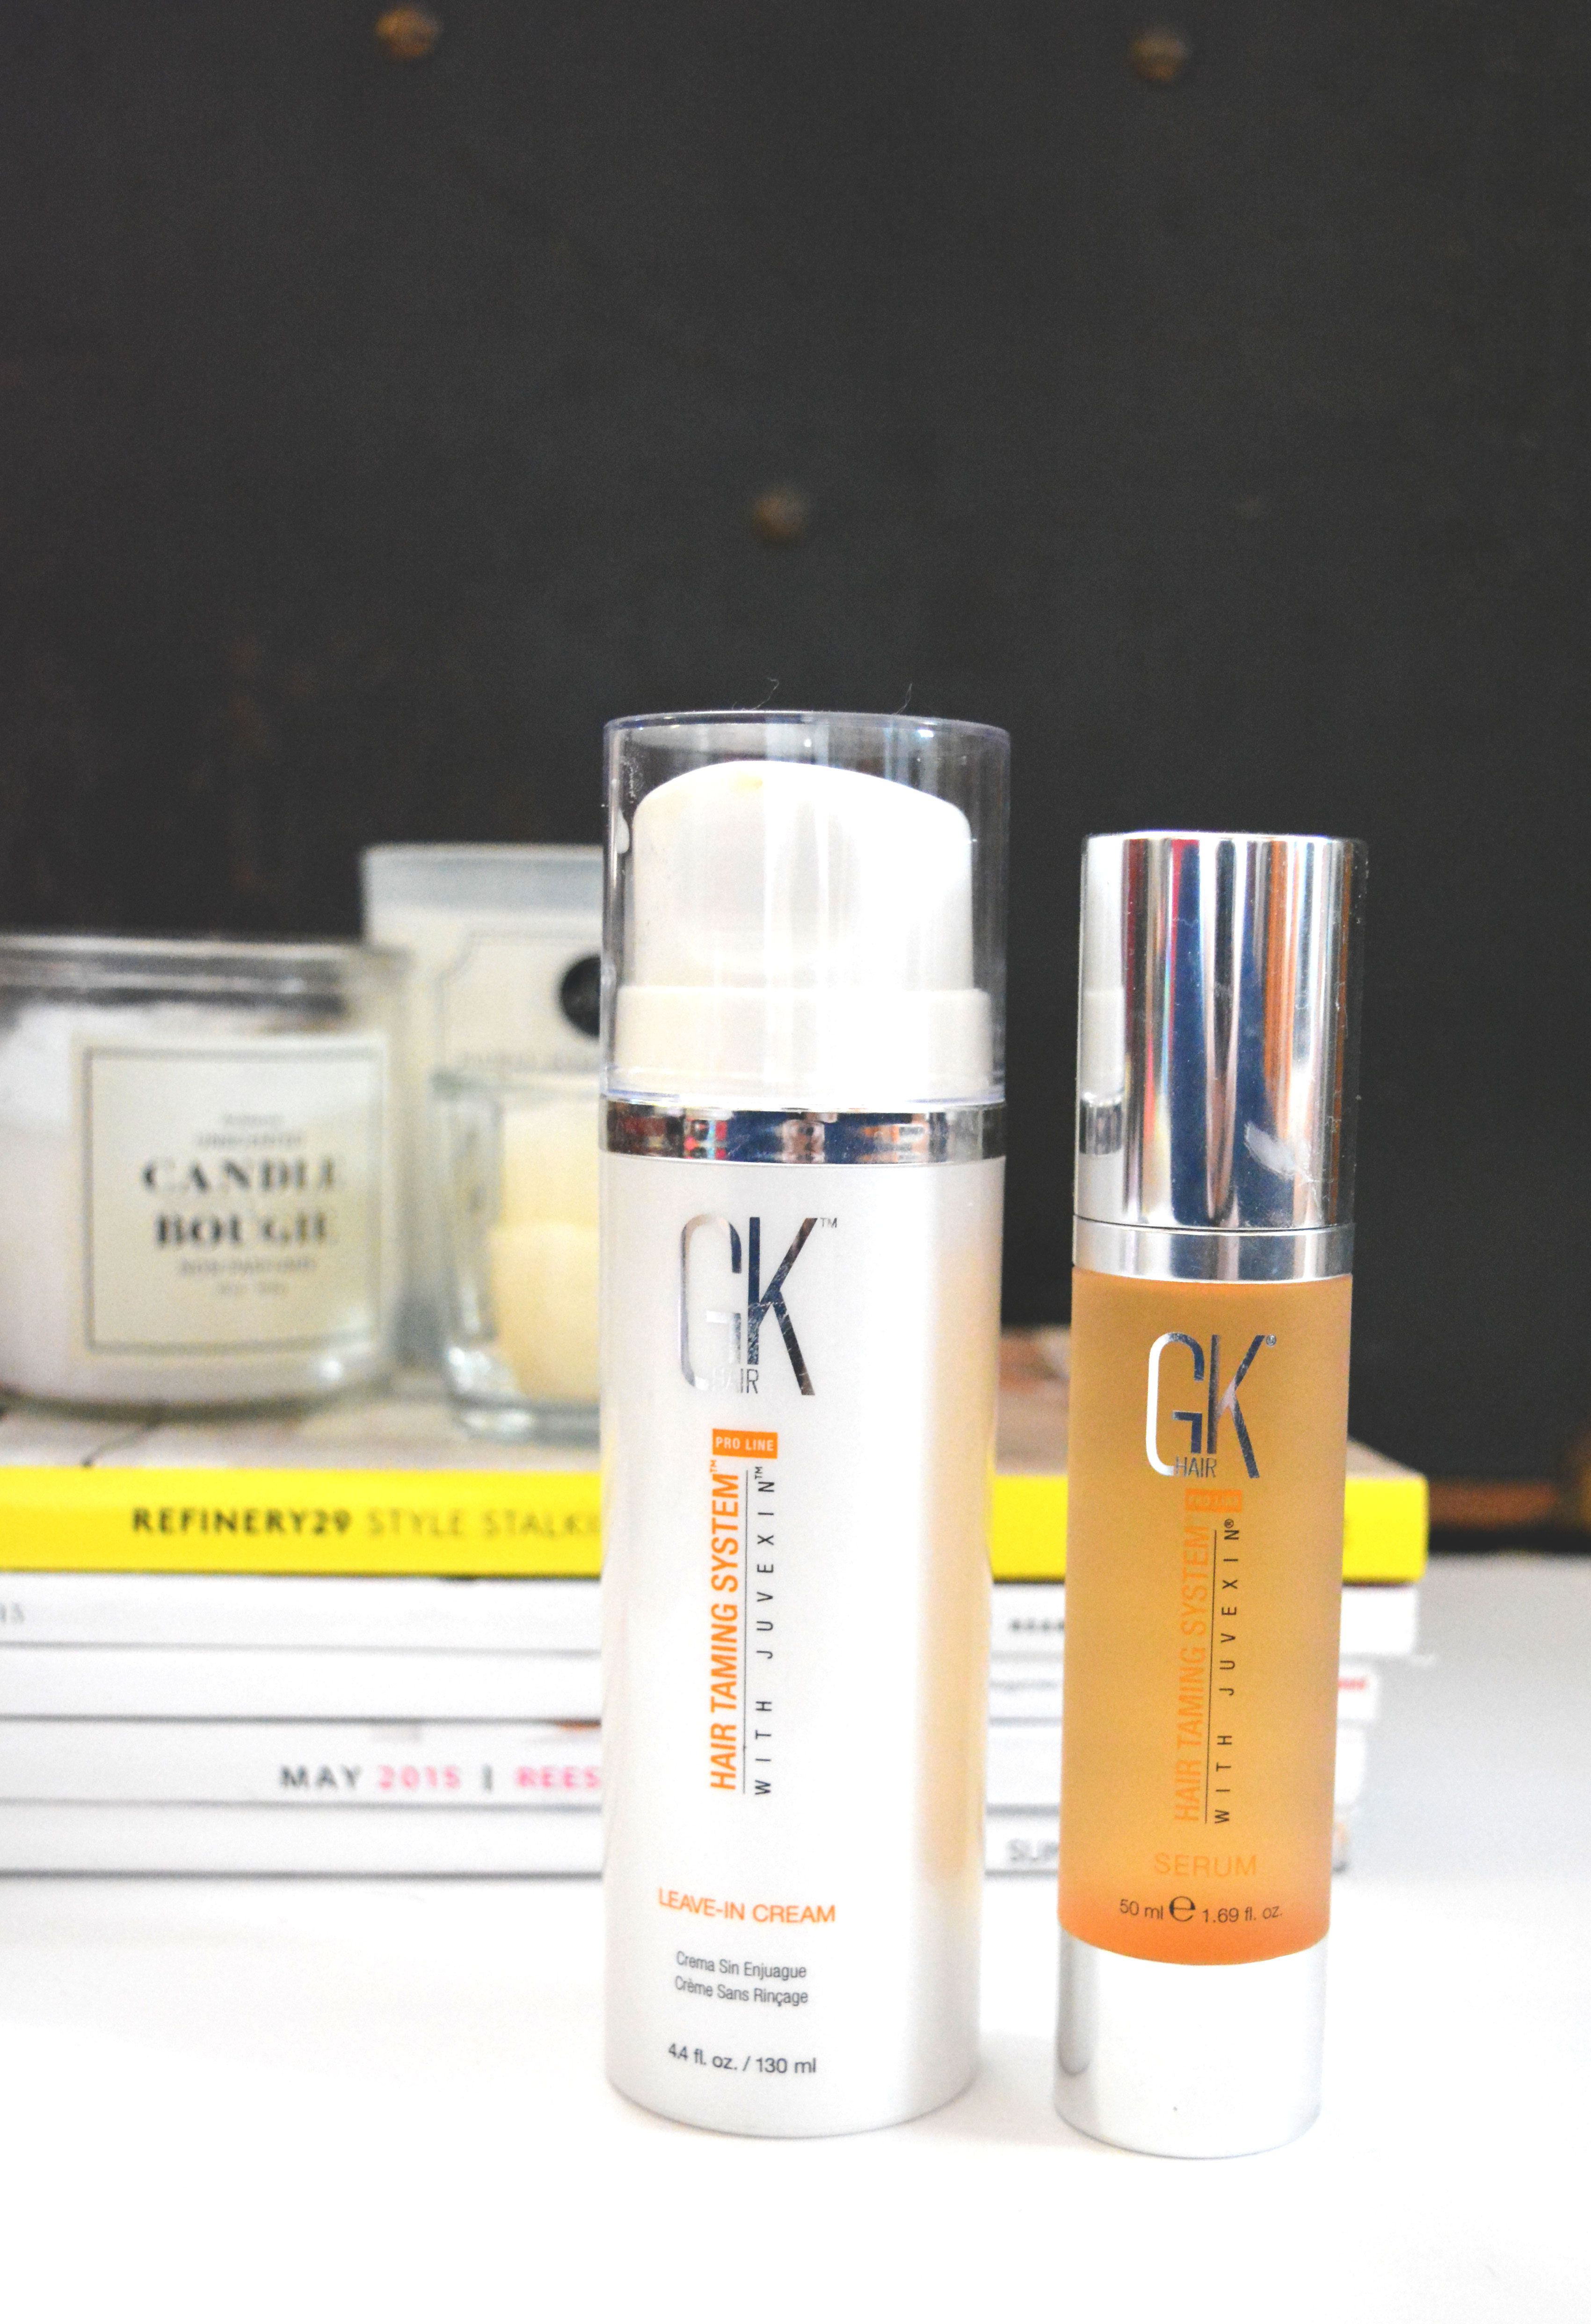 Hask Argan Oil and Keratin Hair Care Products Review